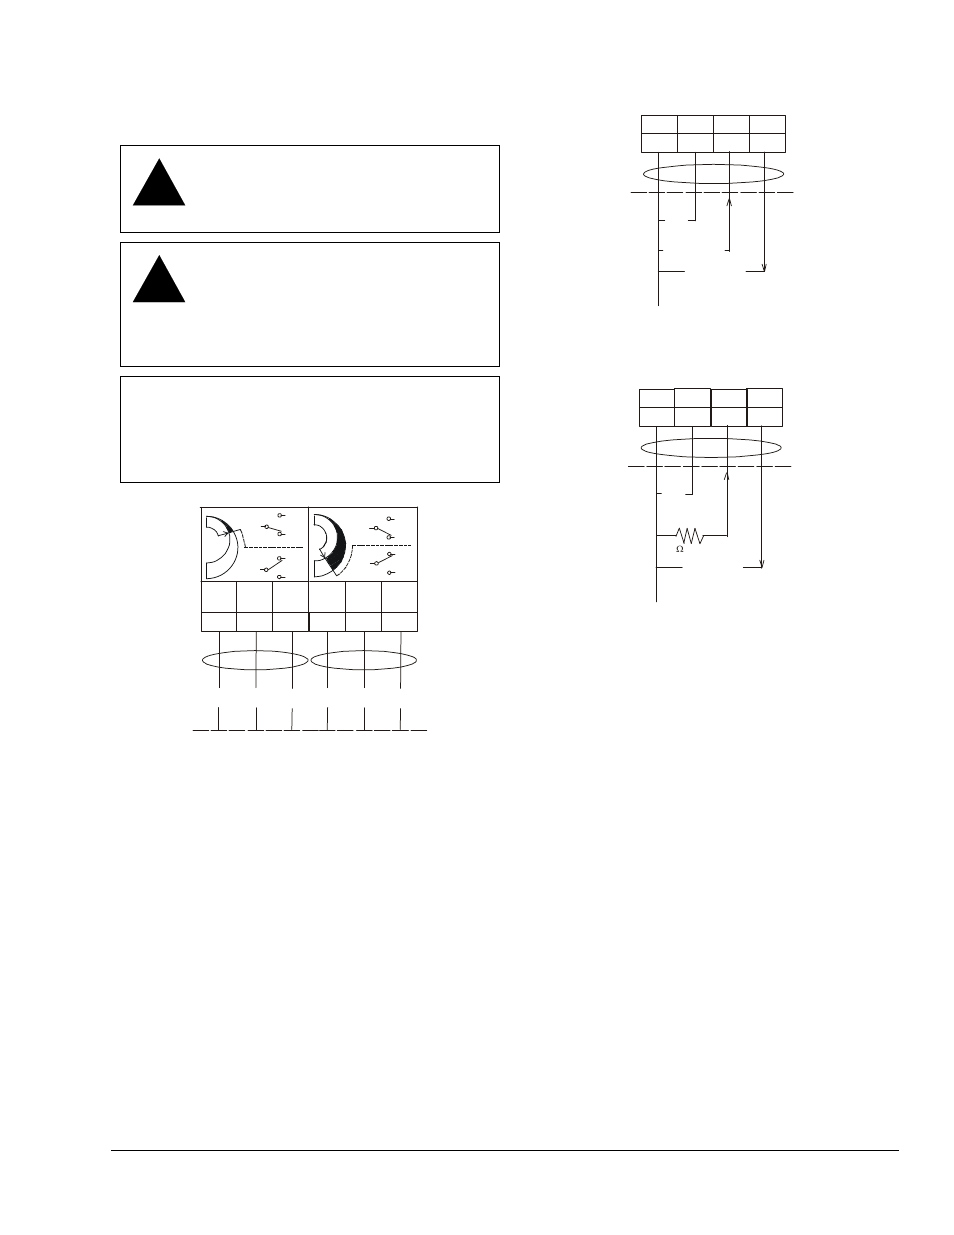 Johnson Controls M9220-GGX-3 User Manual | Page 7 / 13 on johnson outboard motor diagram, johnson outboard lower unit parts, johnson outboard tachometer wiring diagram, mercury outboard 115 hp diagrams, evinrude tilt and trim diagrams, johnson temp controller, johnson trolling motor wiring diagram, johnson controls lighting, electric motor wire hookup diagrams, johnson temperature control valve, johnson controls manuals, johnson ignition wiring diagram, evinrude parts diagrams, johnson controls seats, johnson controls battery, motor connections diagrams, johnson controls tools, johnson controls software,